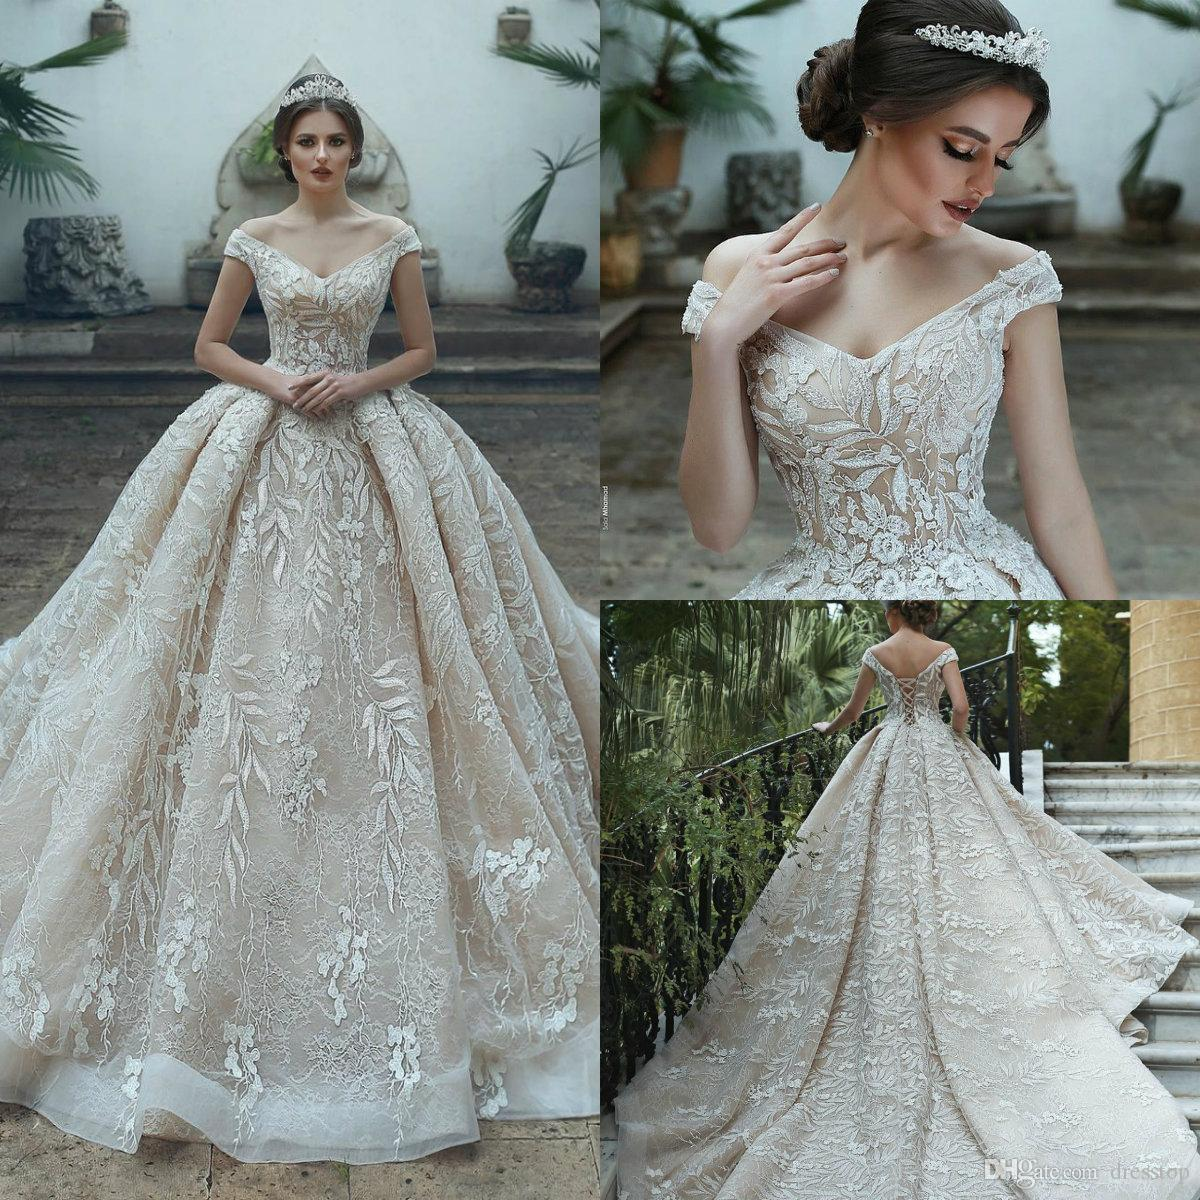 Champagne Lace Ball Gown Wedding Dress Off Shoulder Corset Back